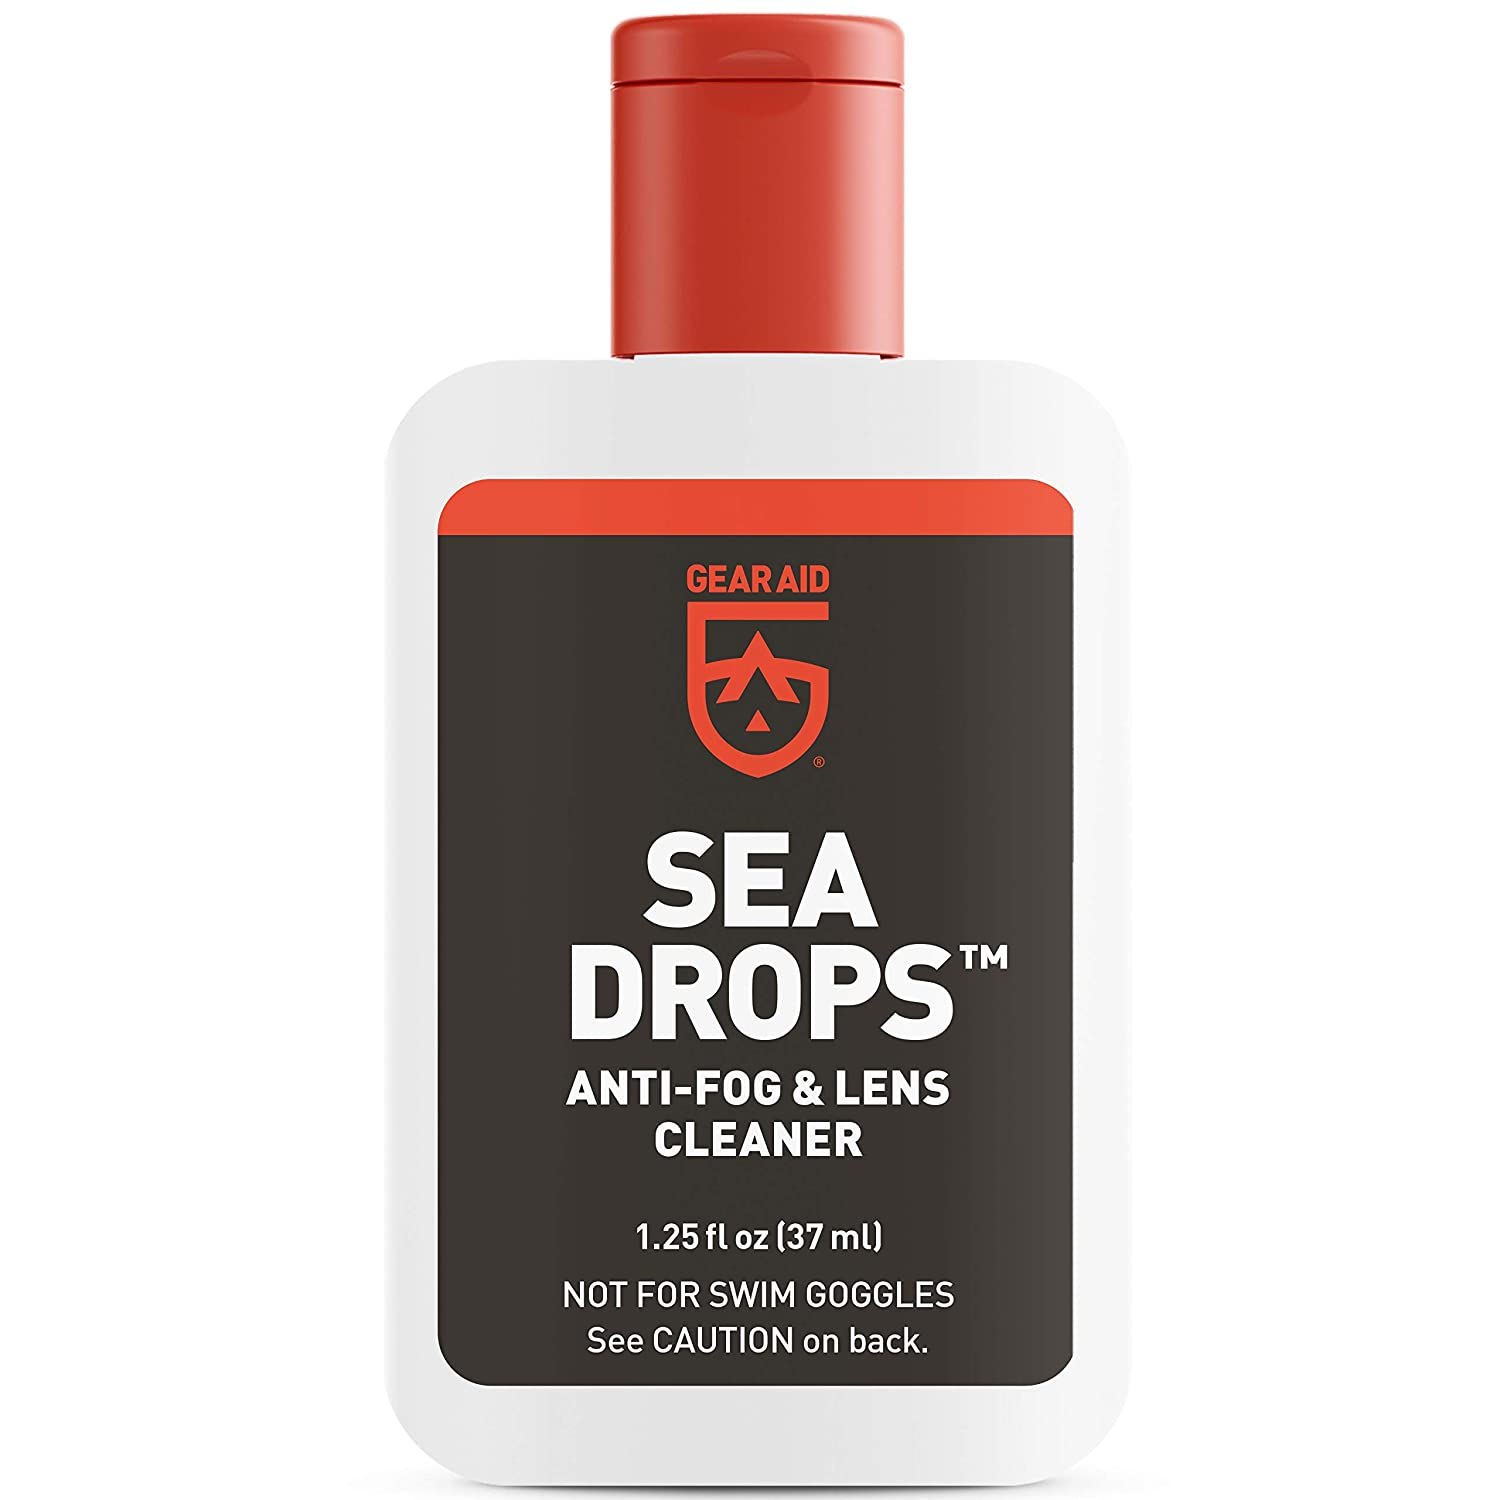 2. Gear Aid Sea Drops Anti-Fog and Cleaner